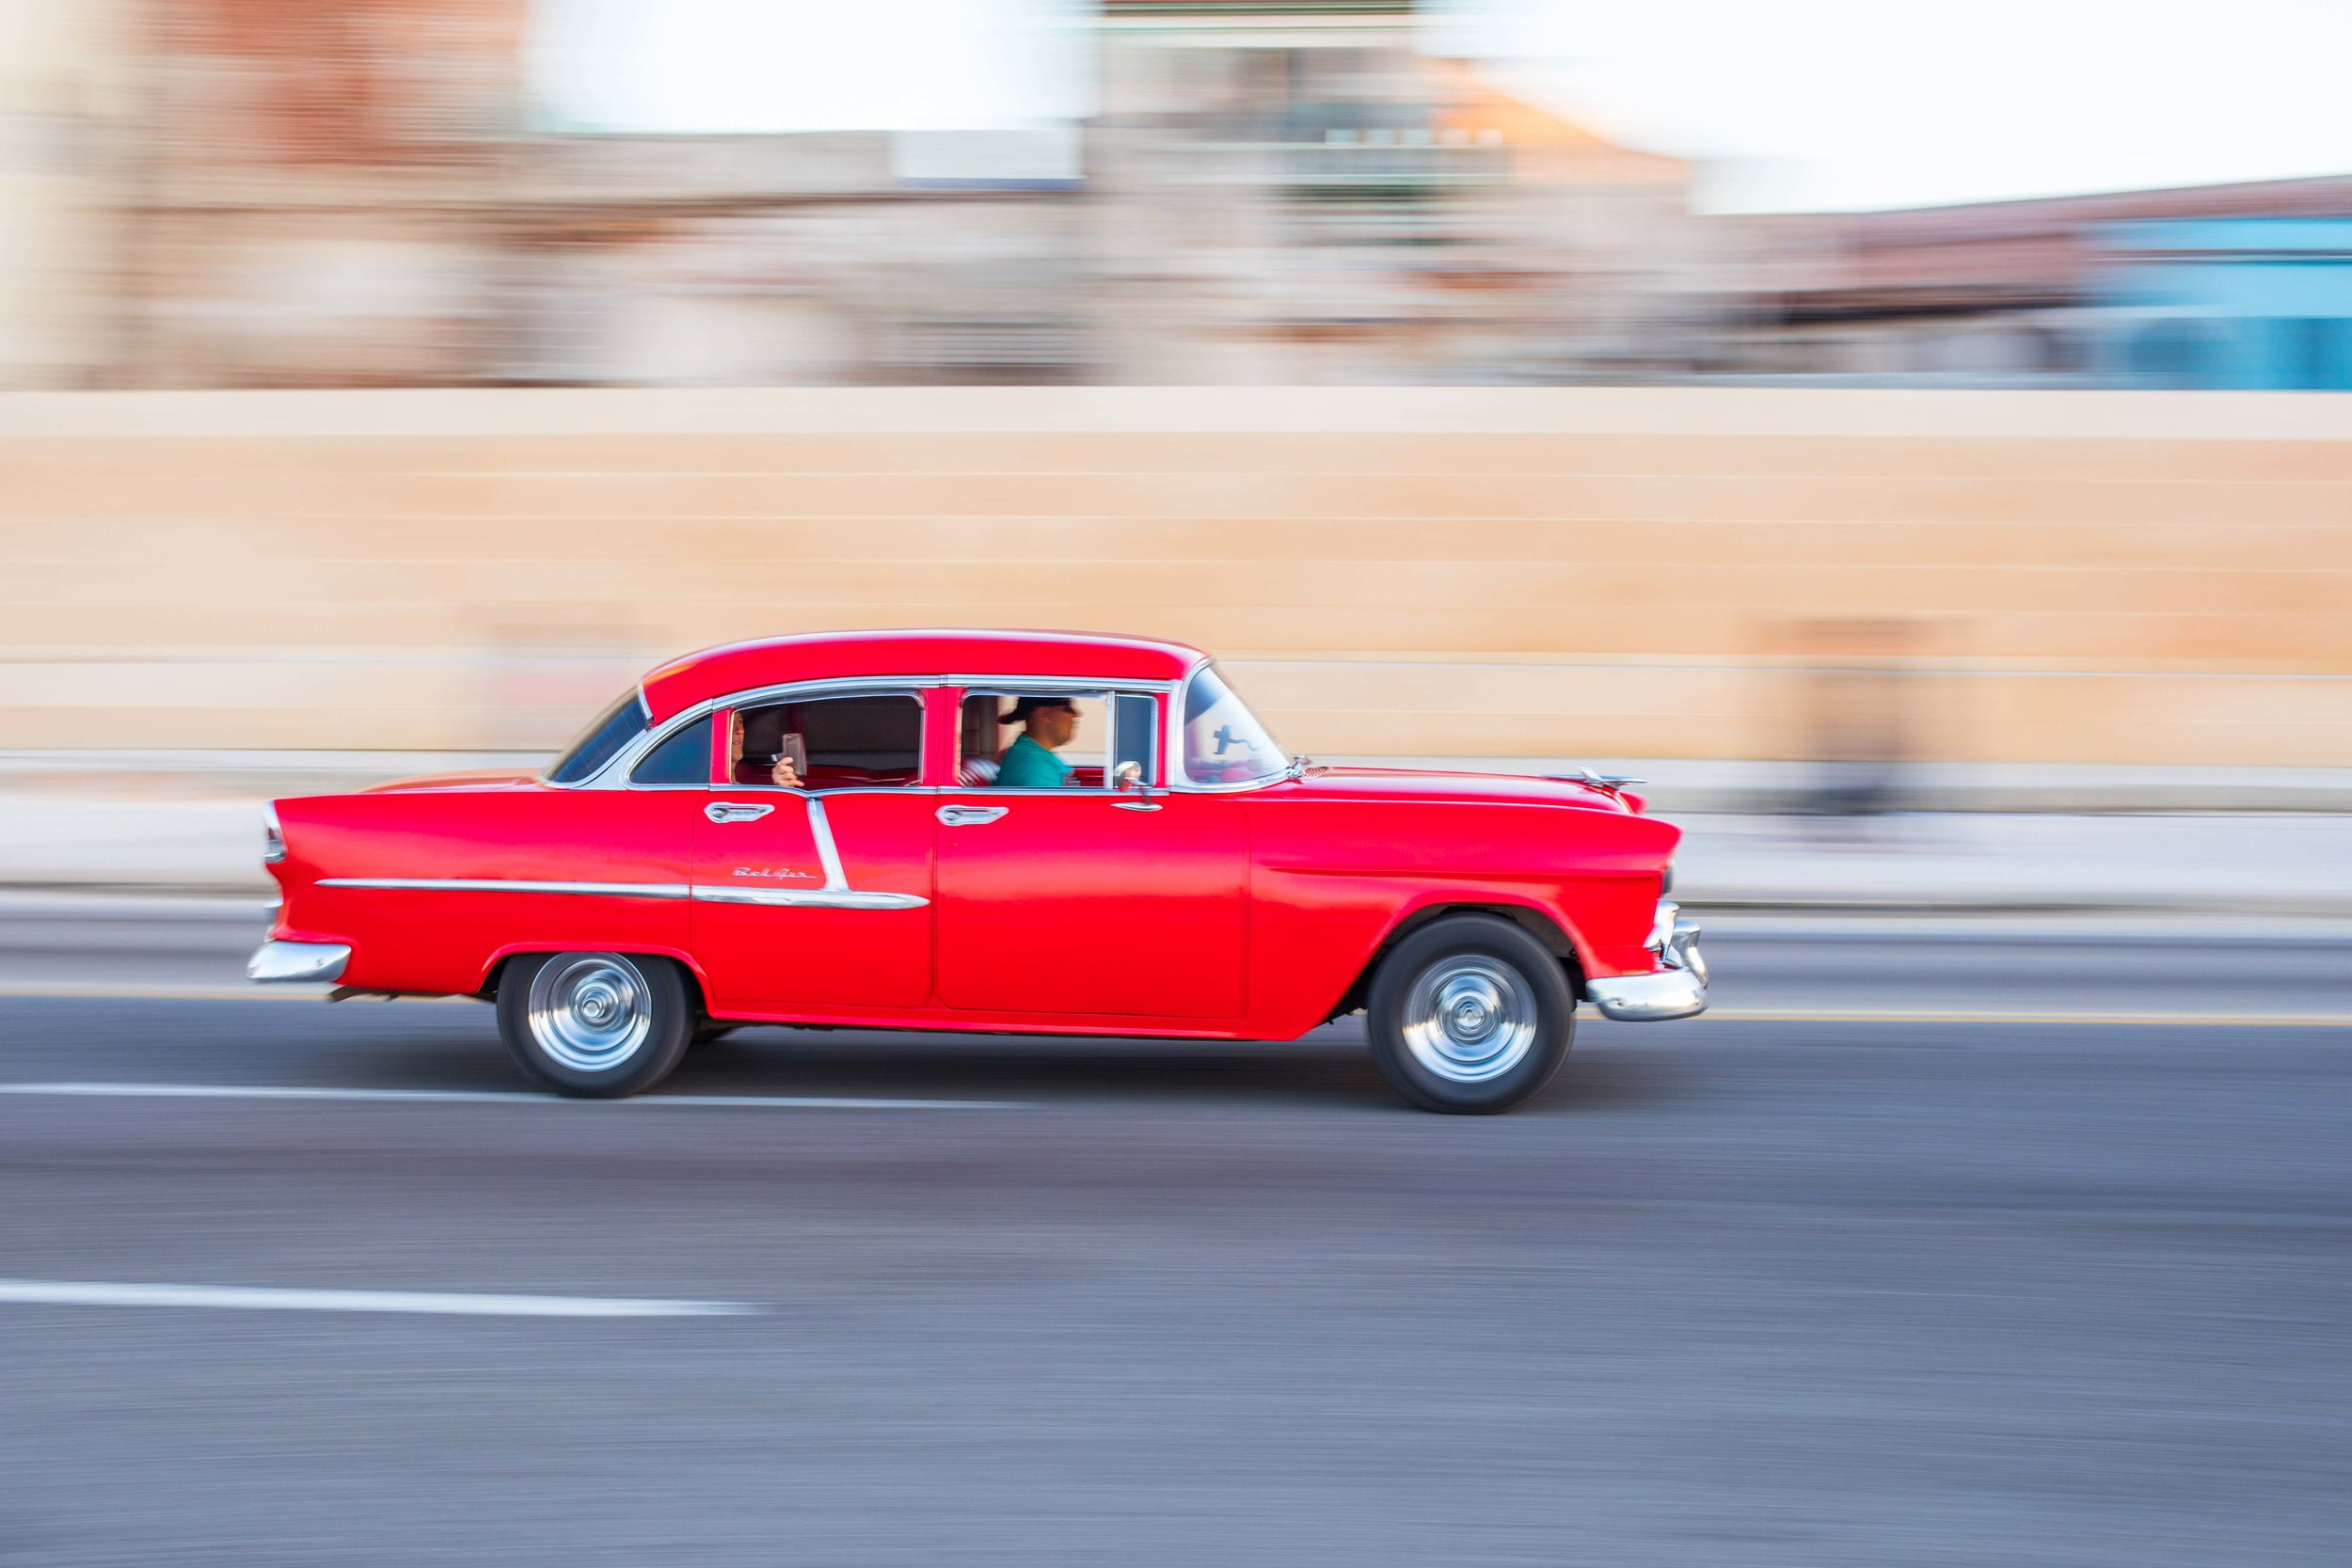 A beautiful red 55 chevy classic car drives along the malecon in Havana, Cuba.